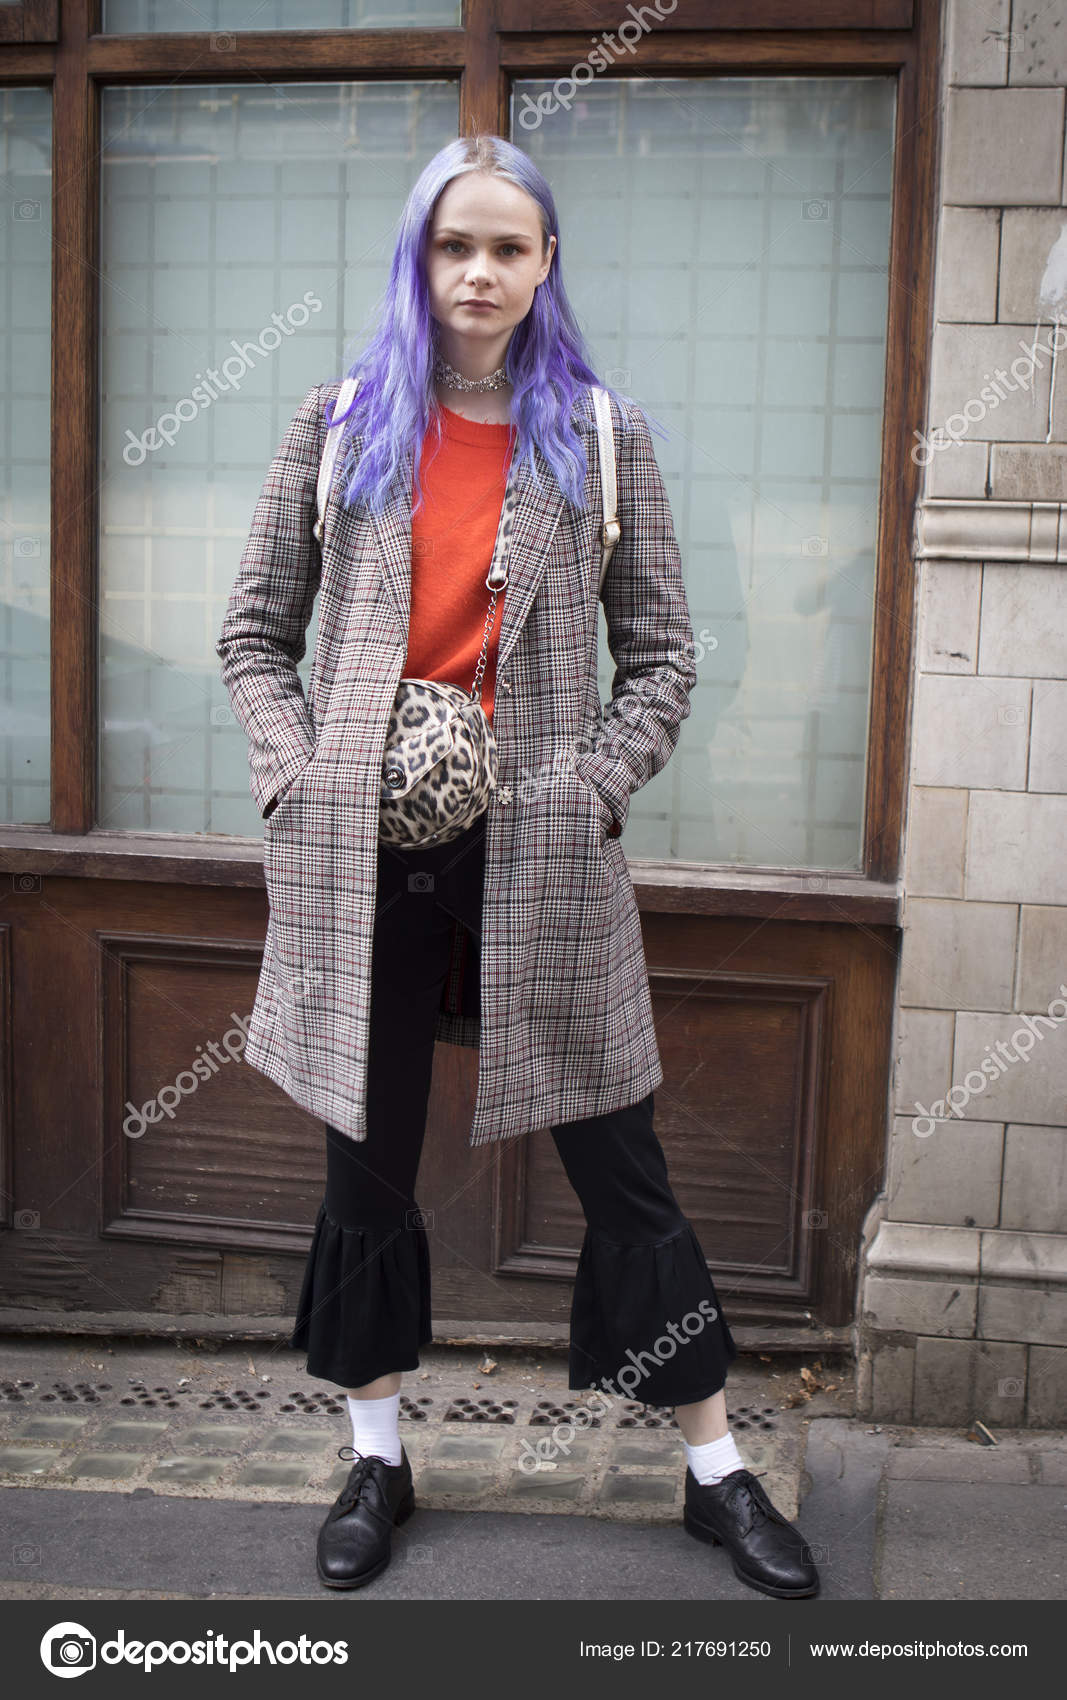 31d21026eb7 London United Kingdom September 2018 People Street London Fashion Week —  Stock Photo